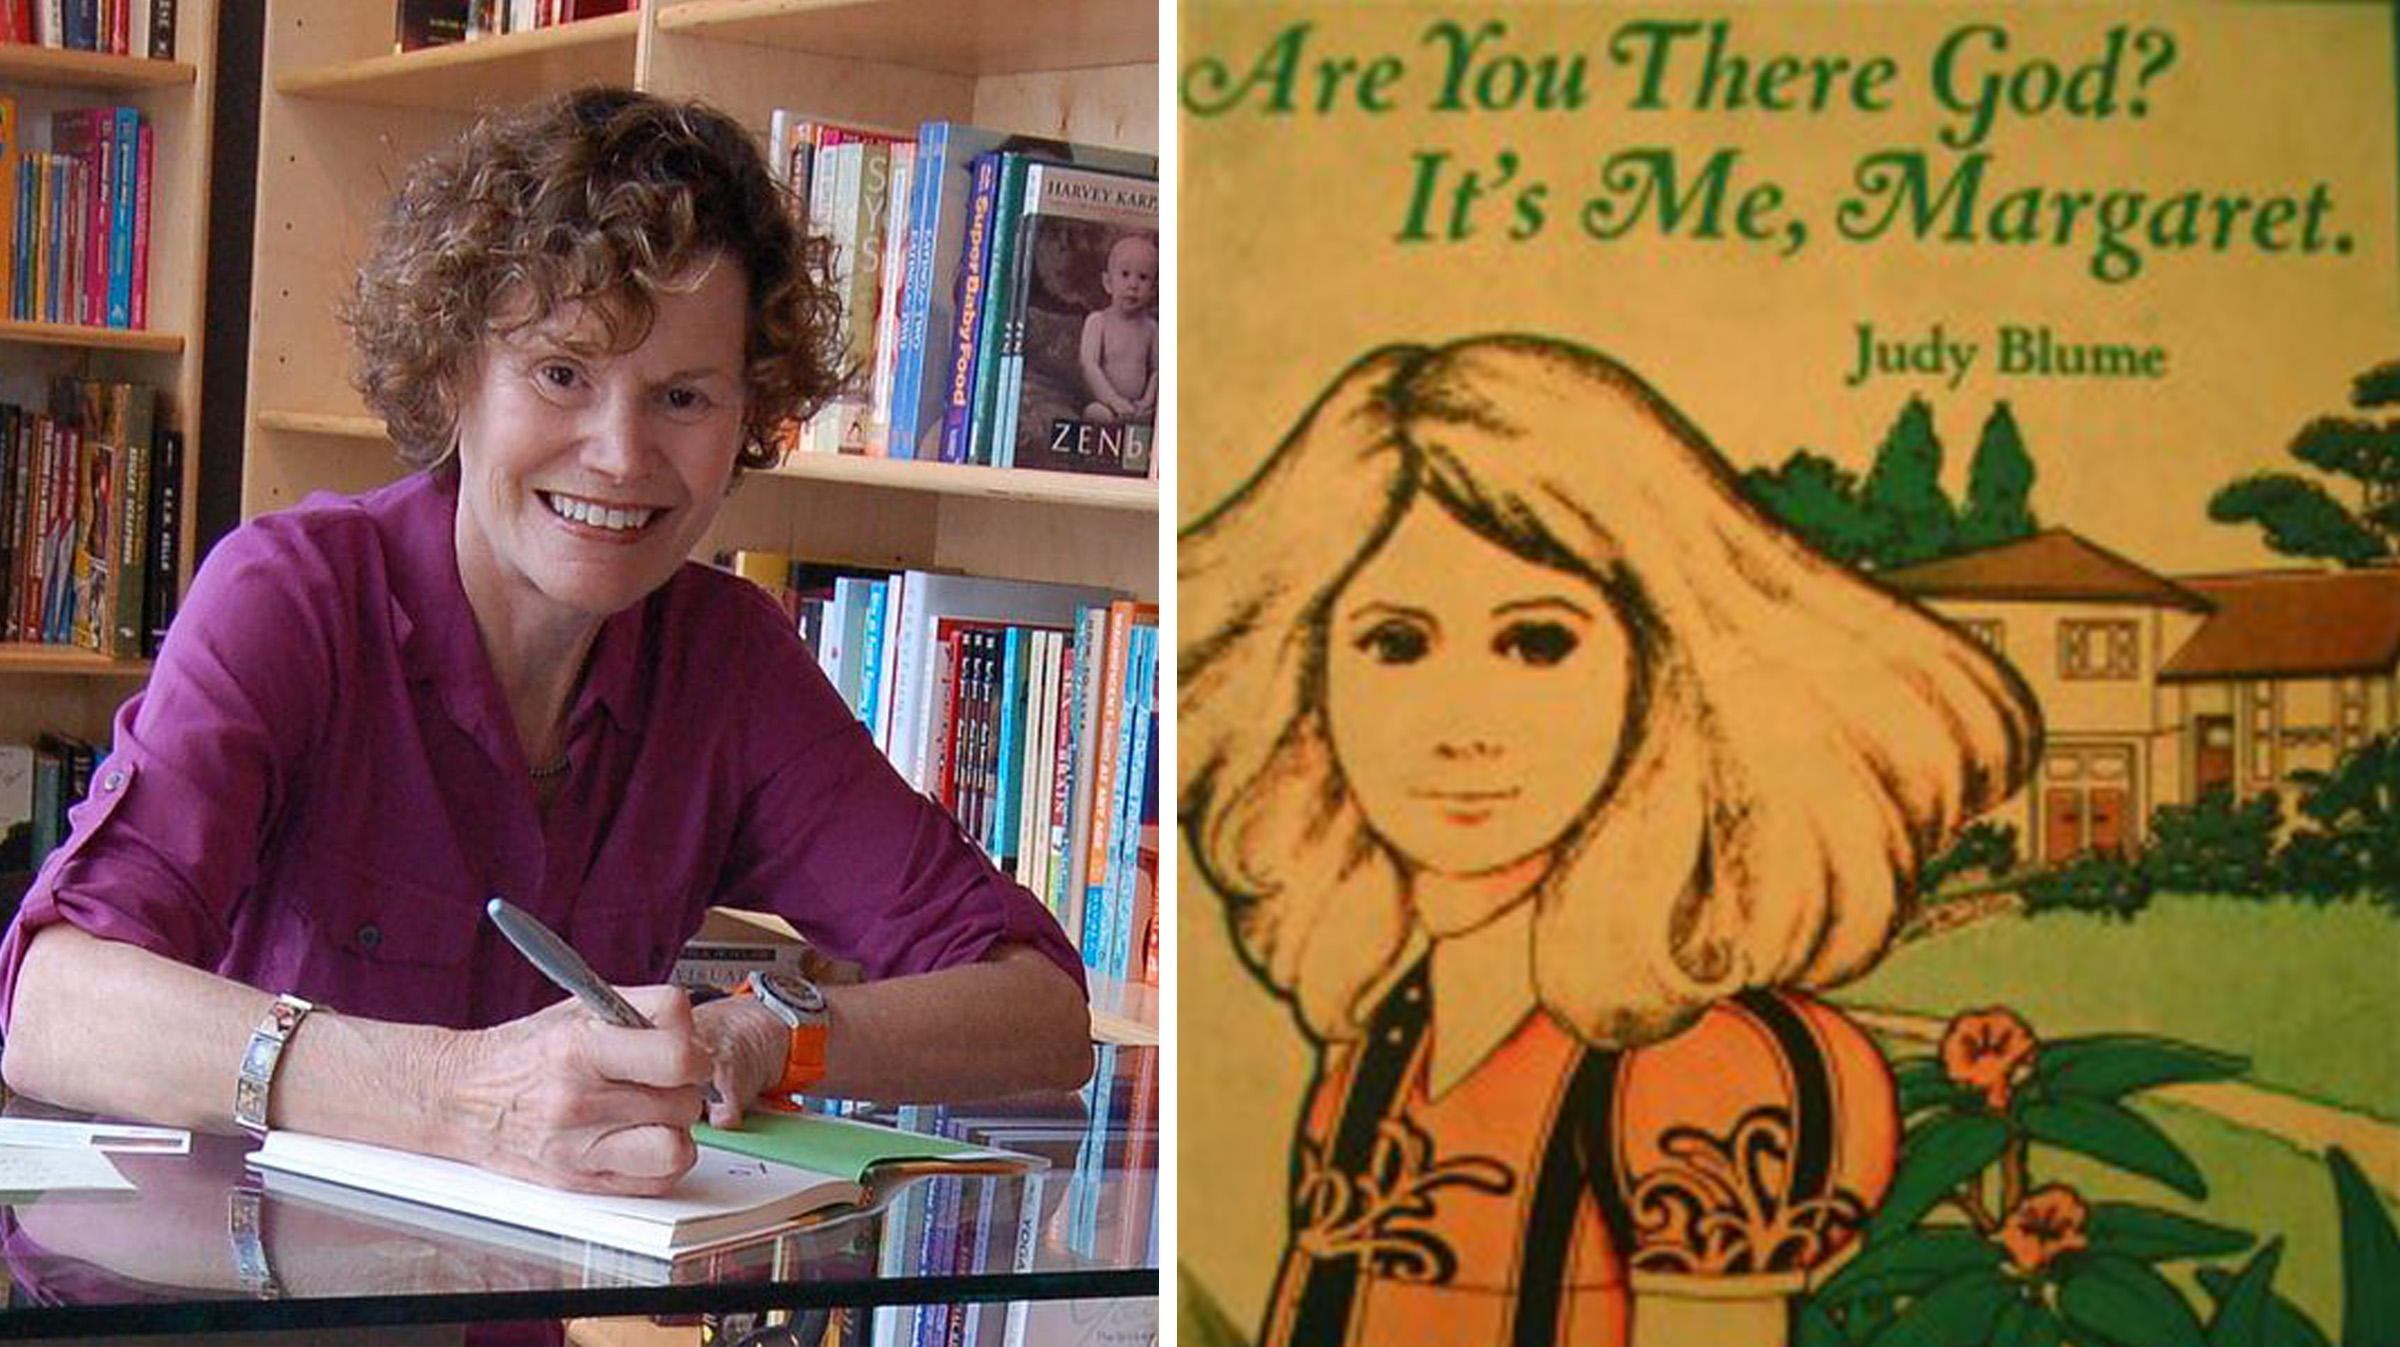 judy blume taught a generation of young girls to be feminists broadly